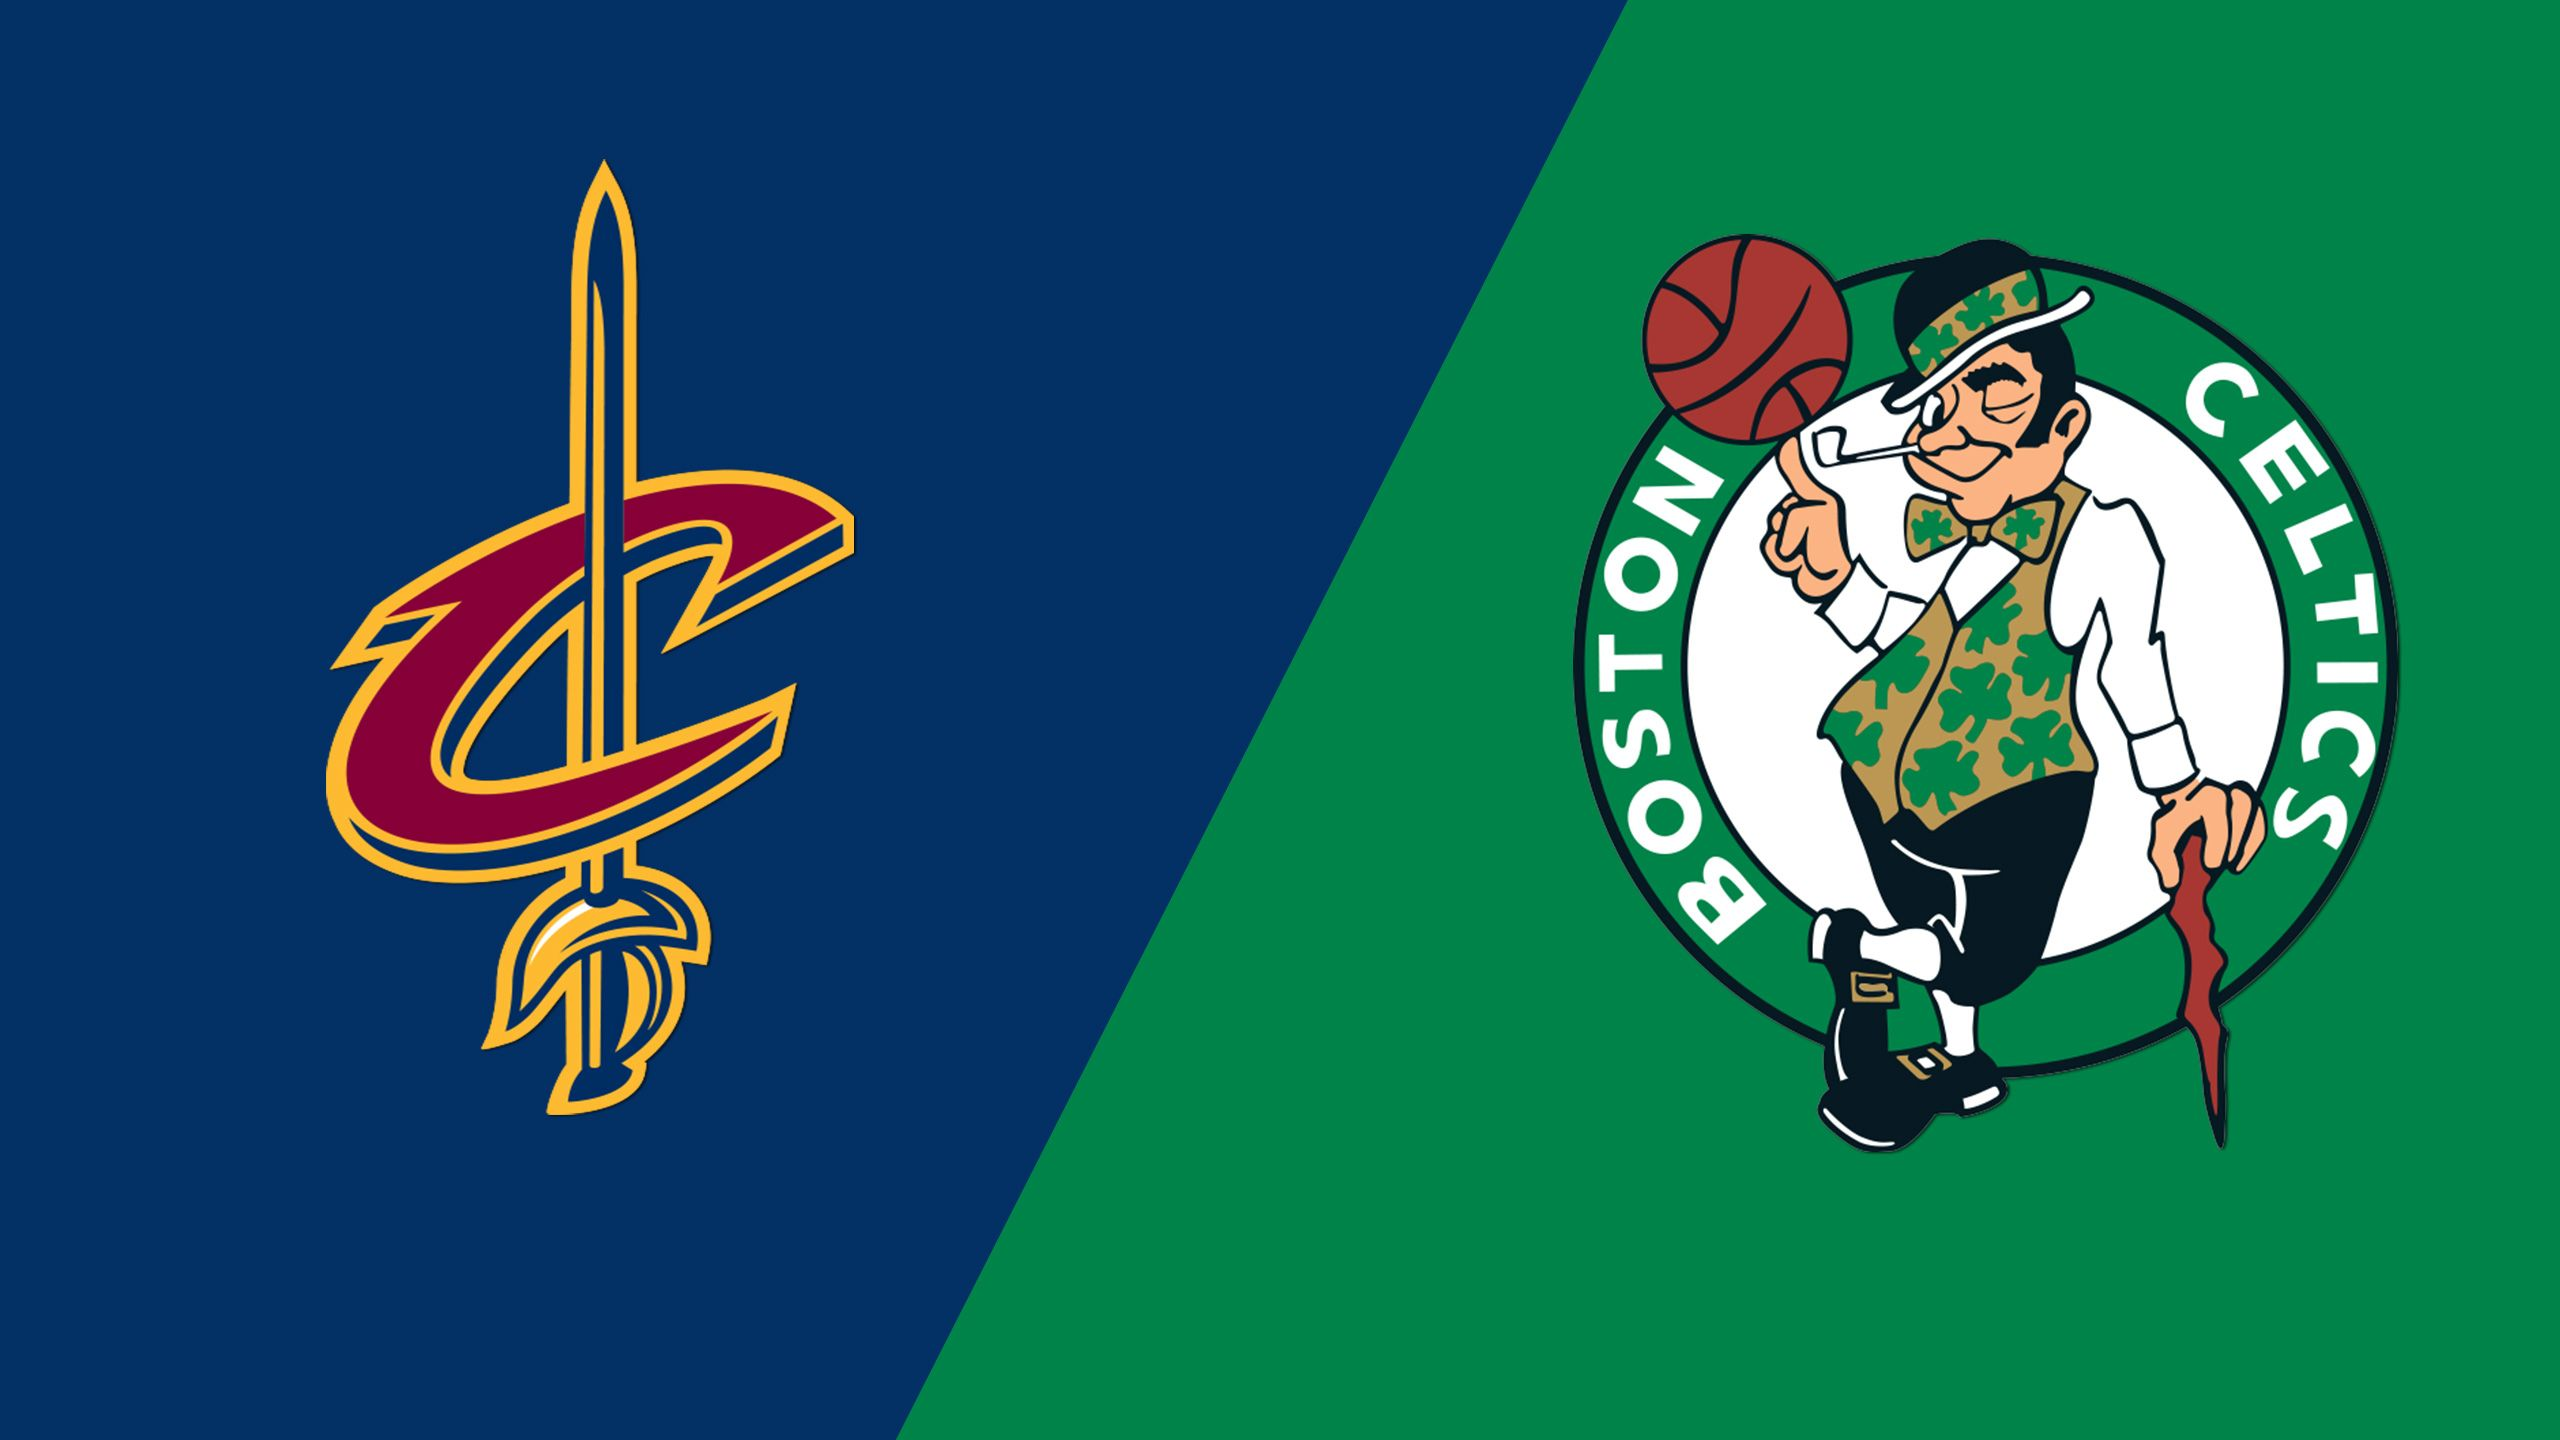 In Spanish - Cleveland Cavaliers vs. Boston Celtics (Conference Finals Game 7)